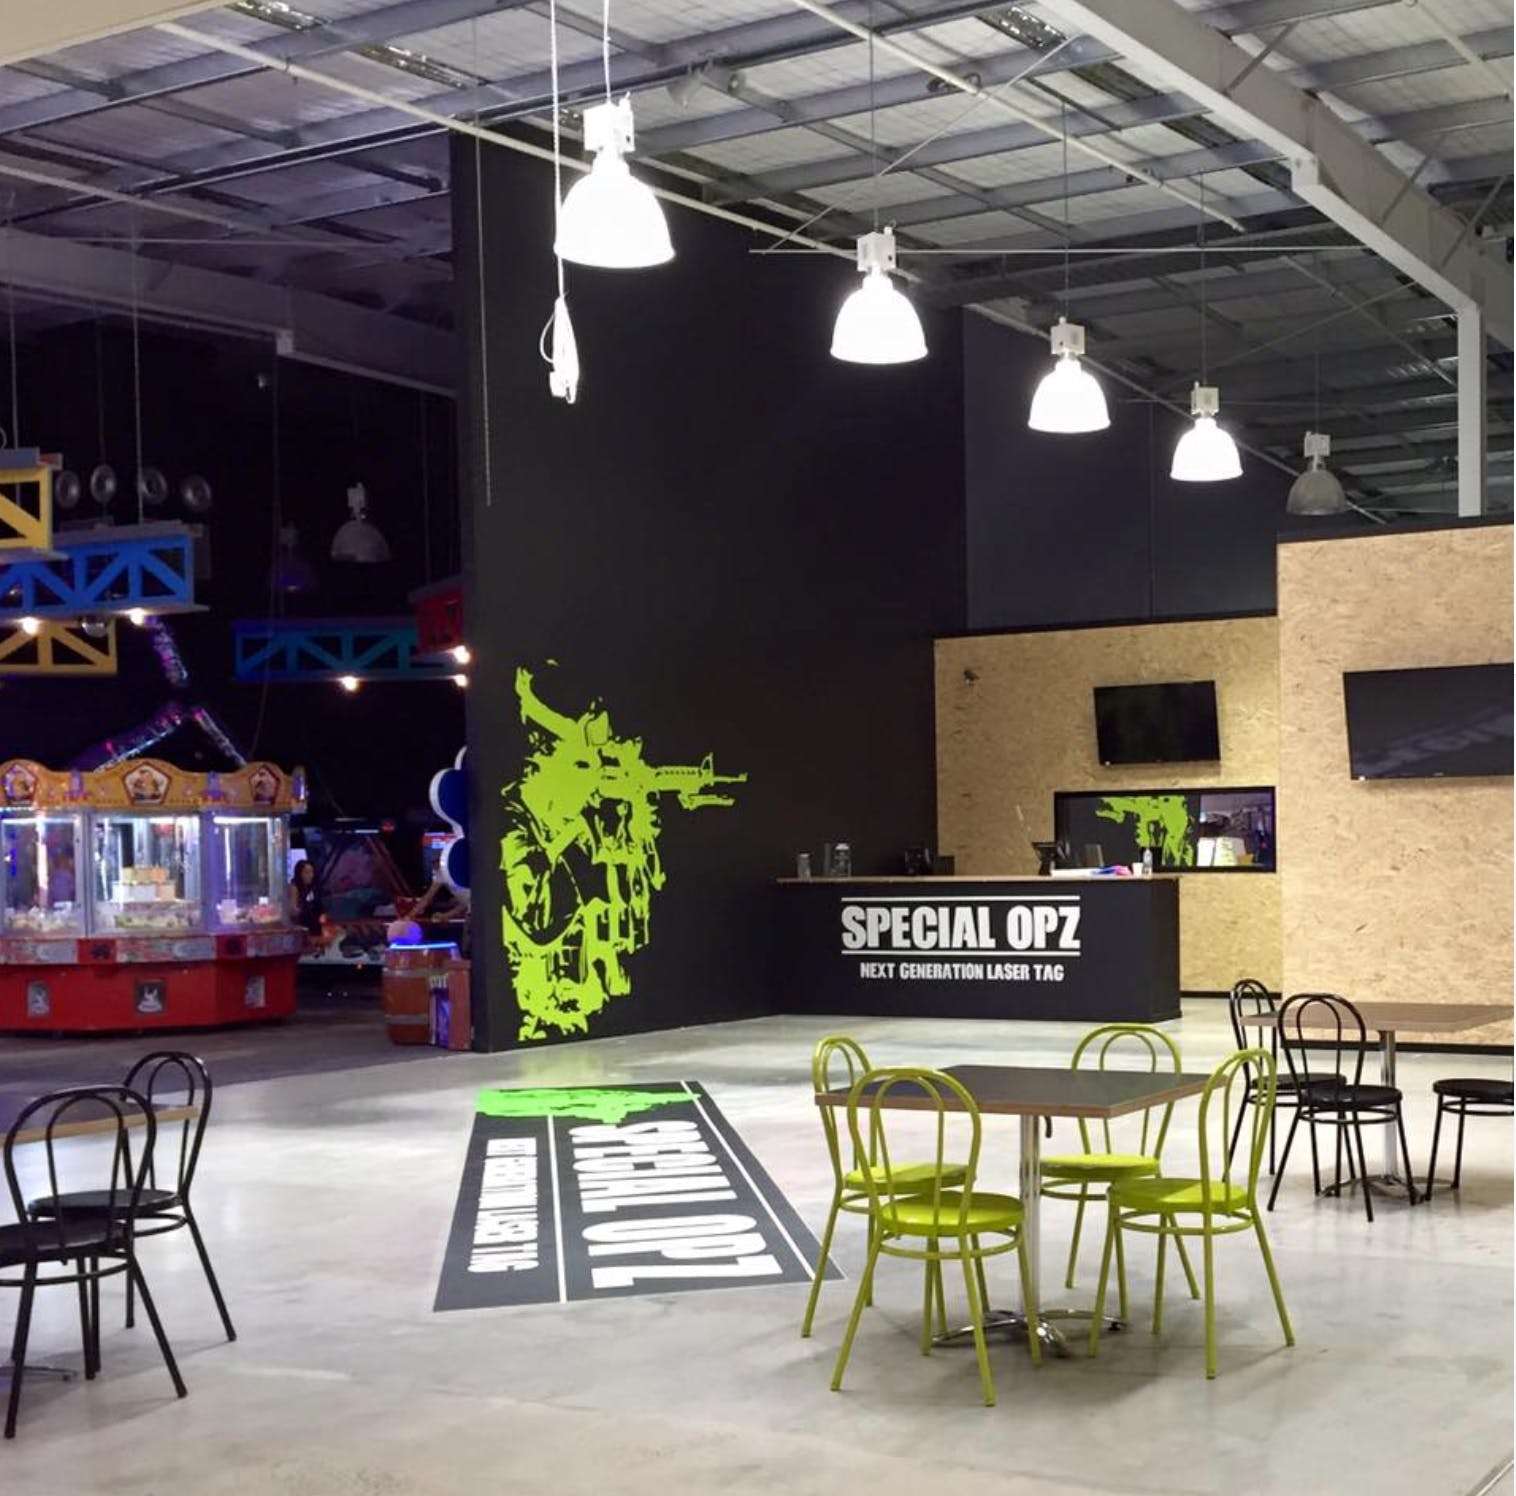 This factory space is the prime venue for a retail pop-up, image 1